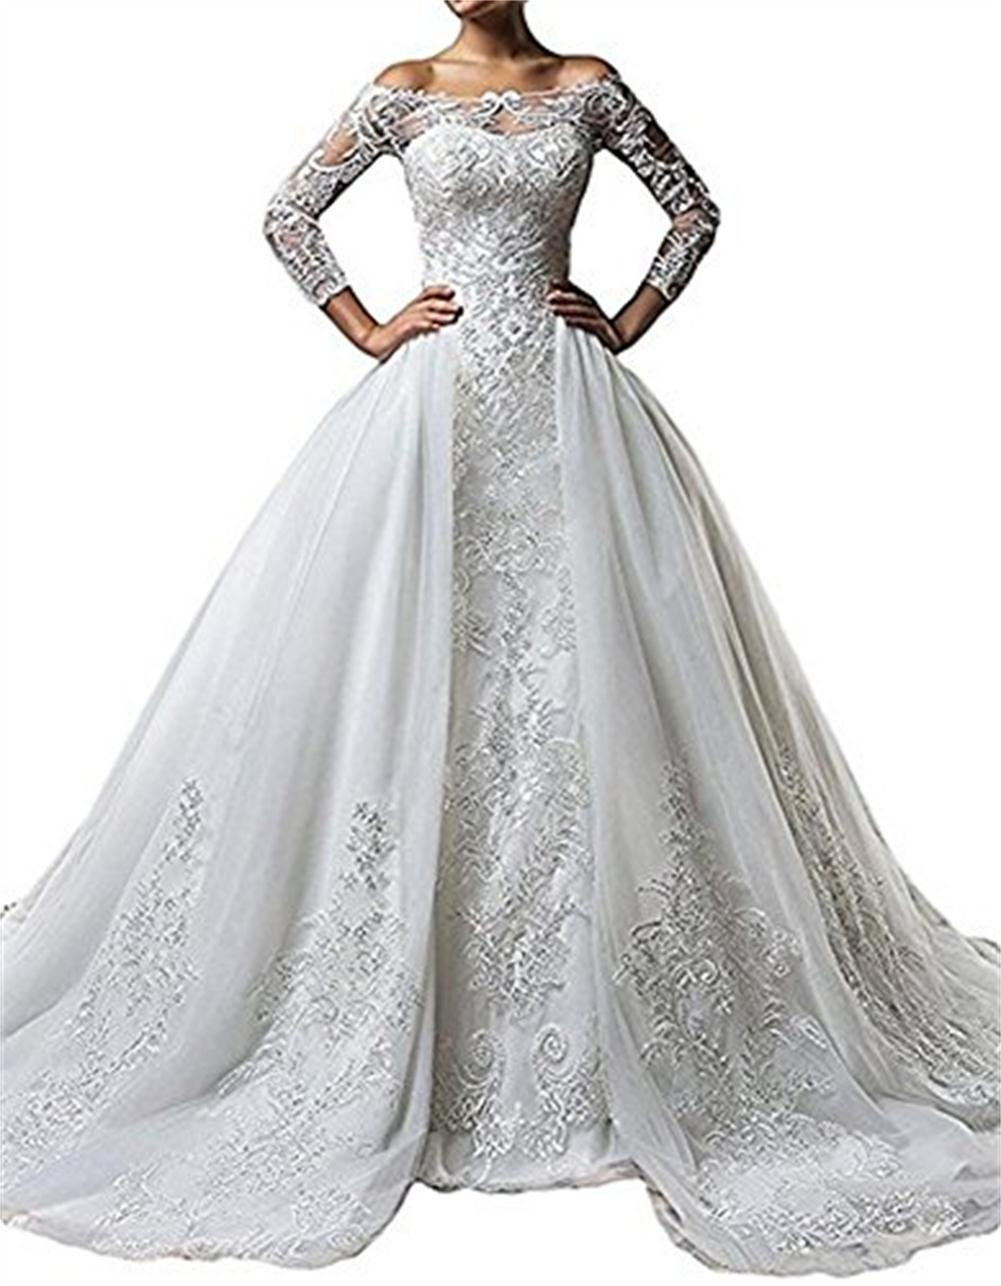 Kiss Rain Women's long Sleeves Off-The-shoulder Lace Mermaid Detachable Train Wedding Dress (14, Ivory)